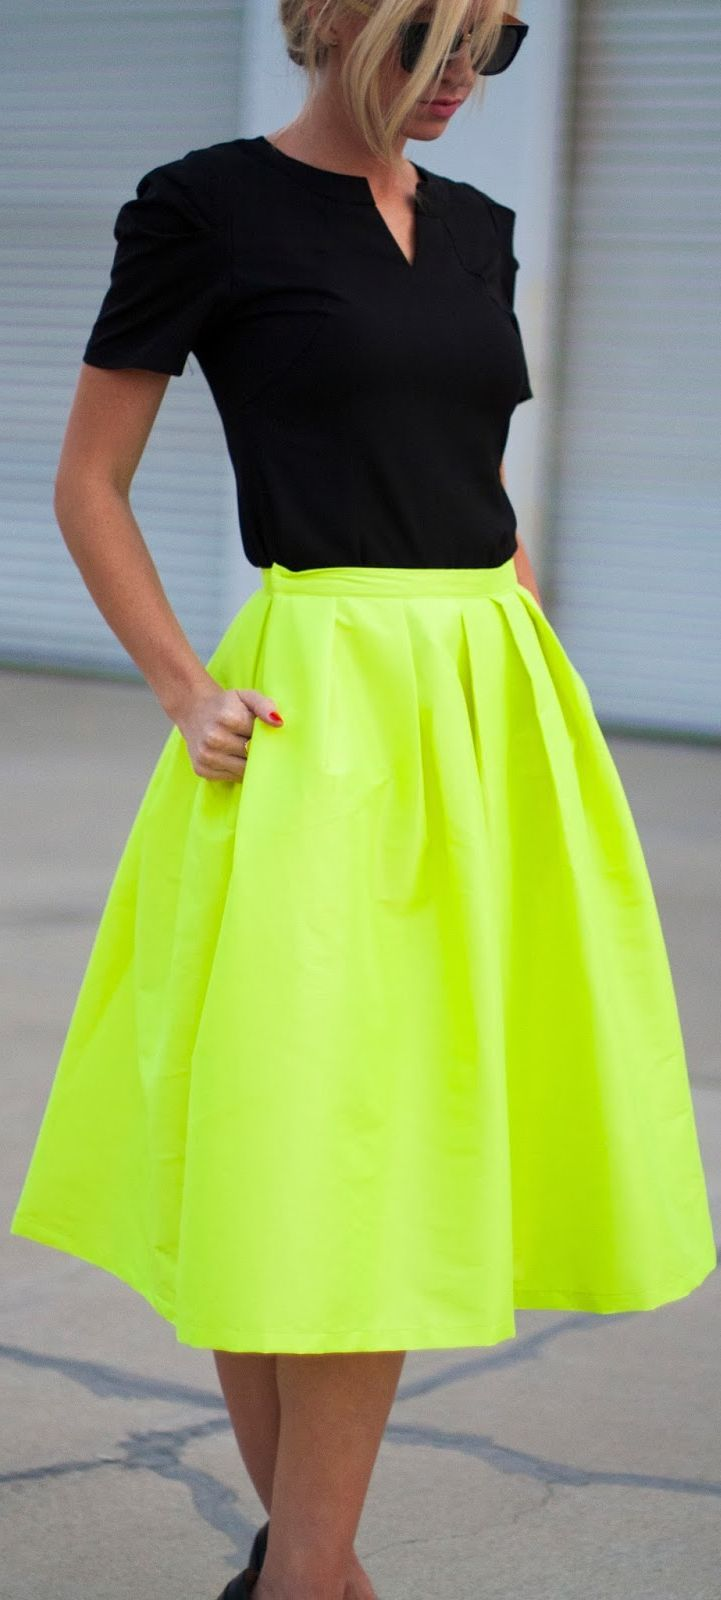 How to bright wear green skirt catalog photo